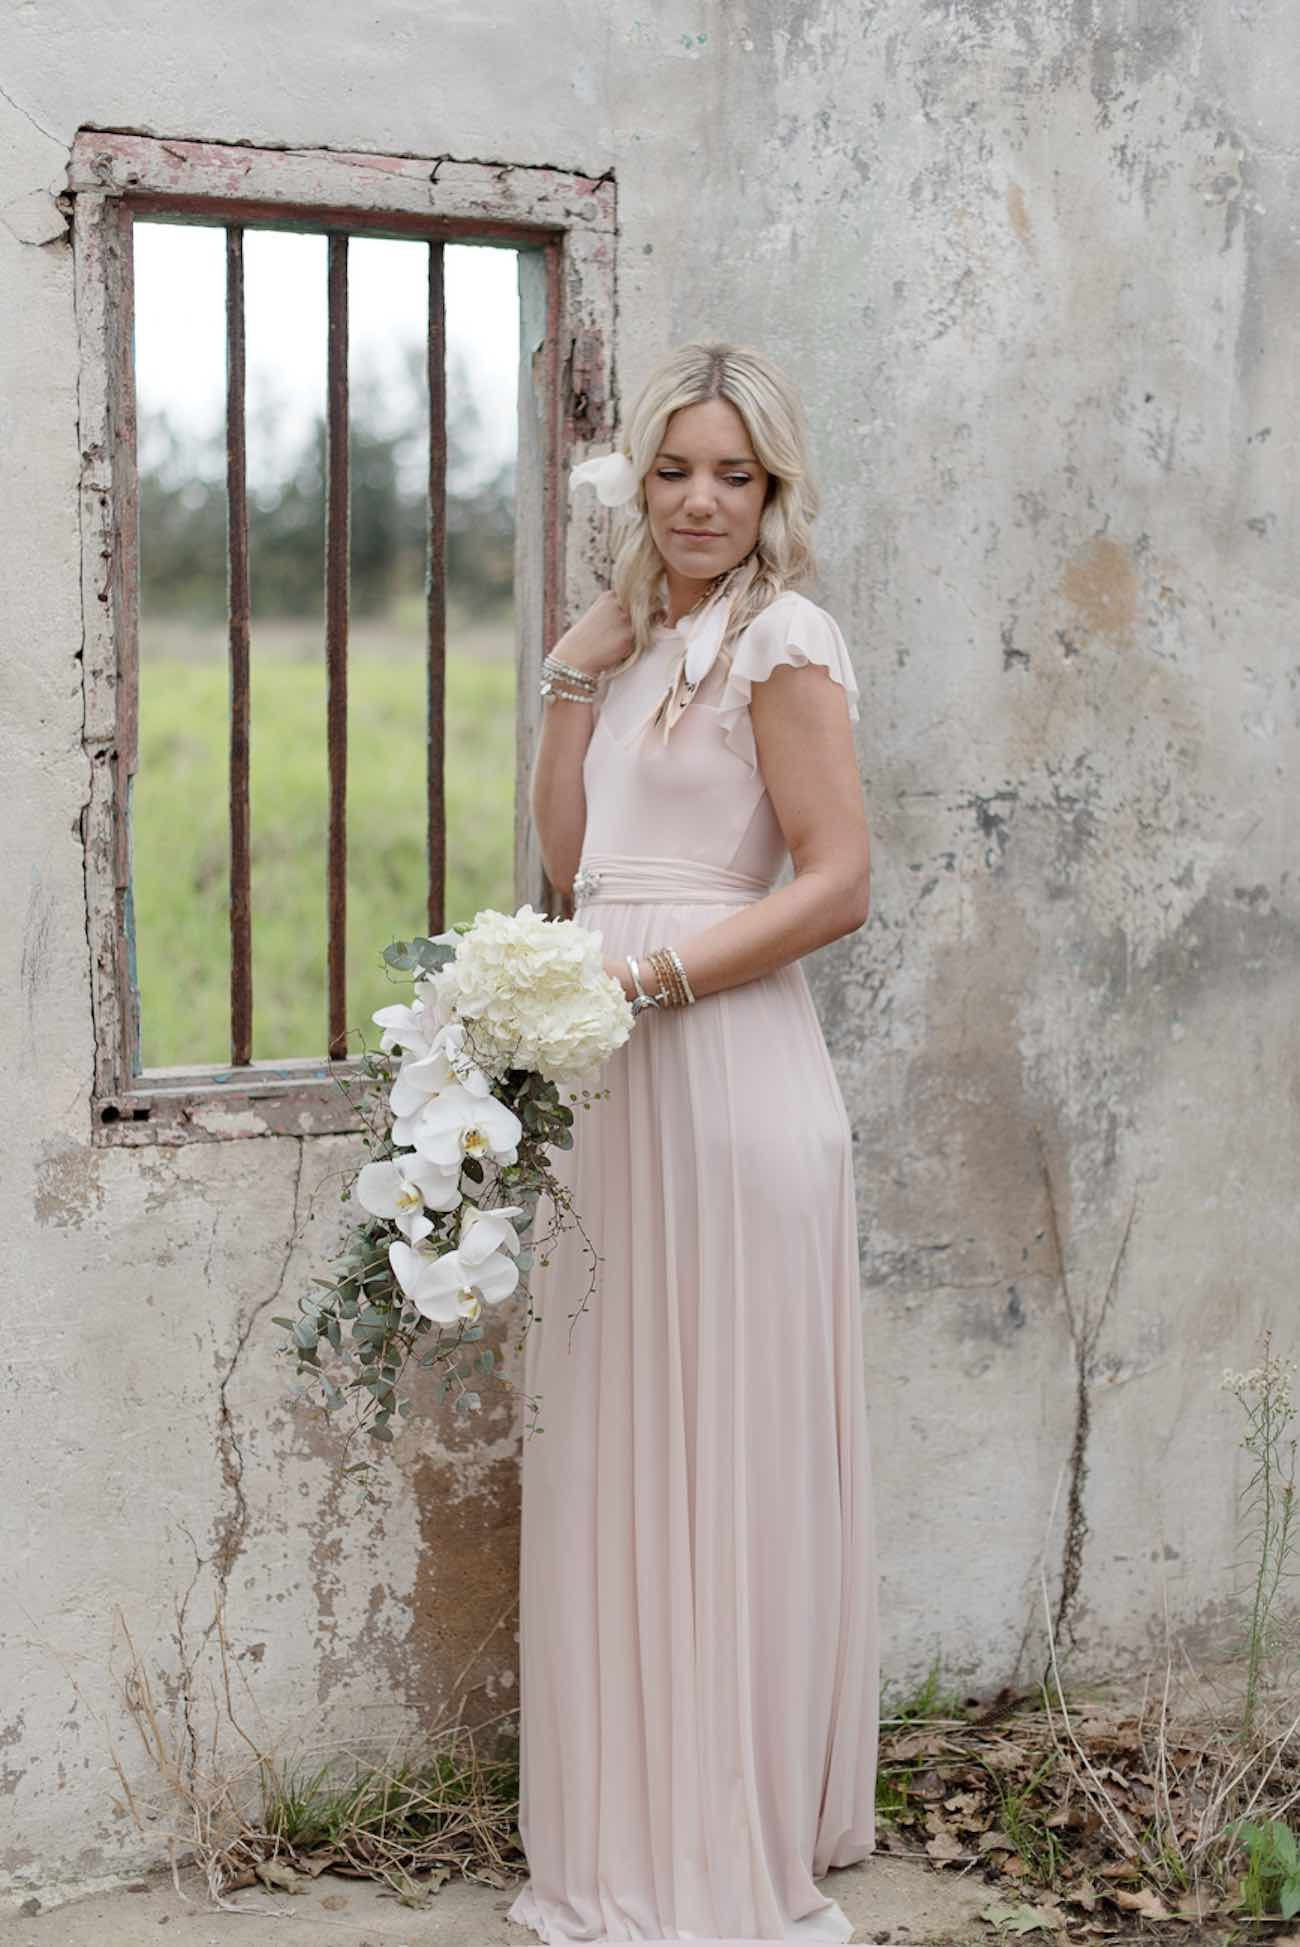 Gorgeously chic bohemian bridesmaid dresses samantha clifton gorgeously chic bohemian bridesmaid dresses and style ideas by jacoba clothing samantha clifton photography ombrellifo Gallery